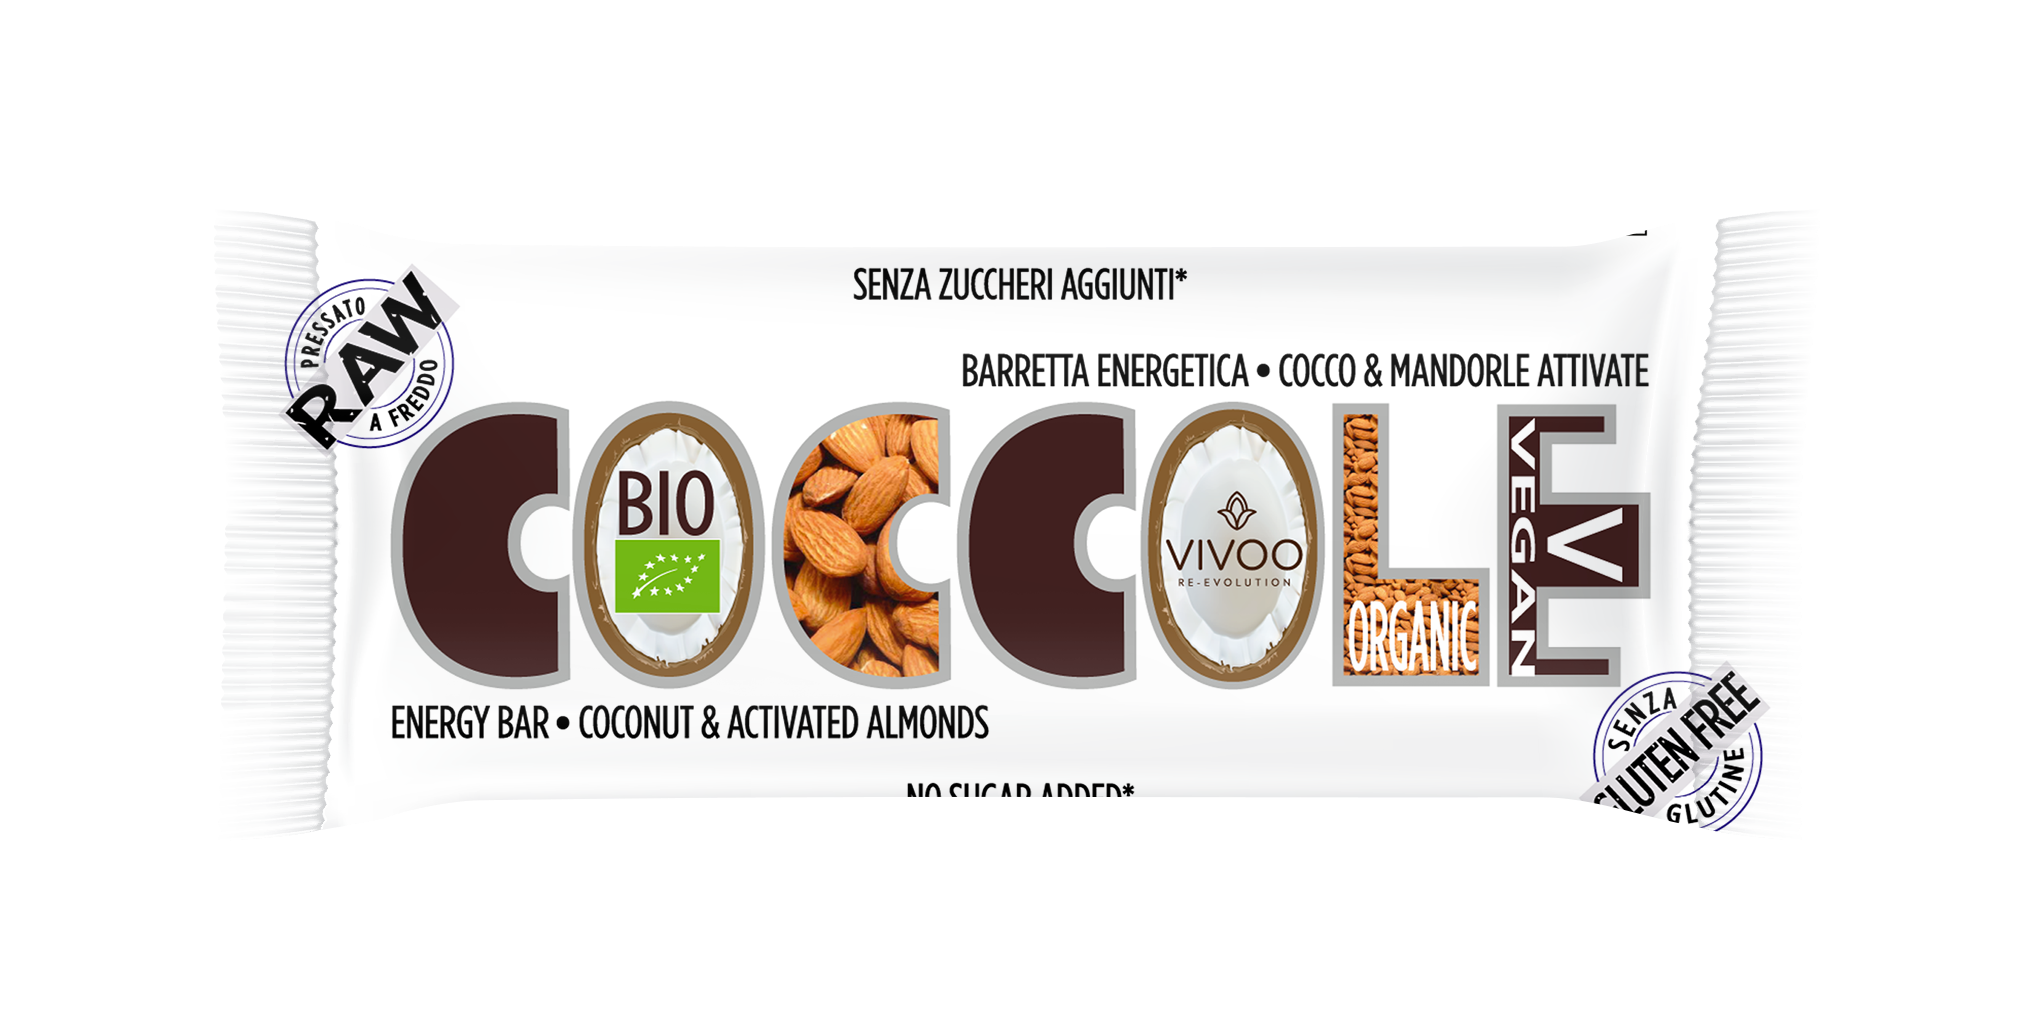 Energy Bar Coccole